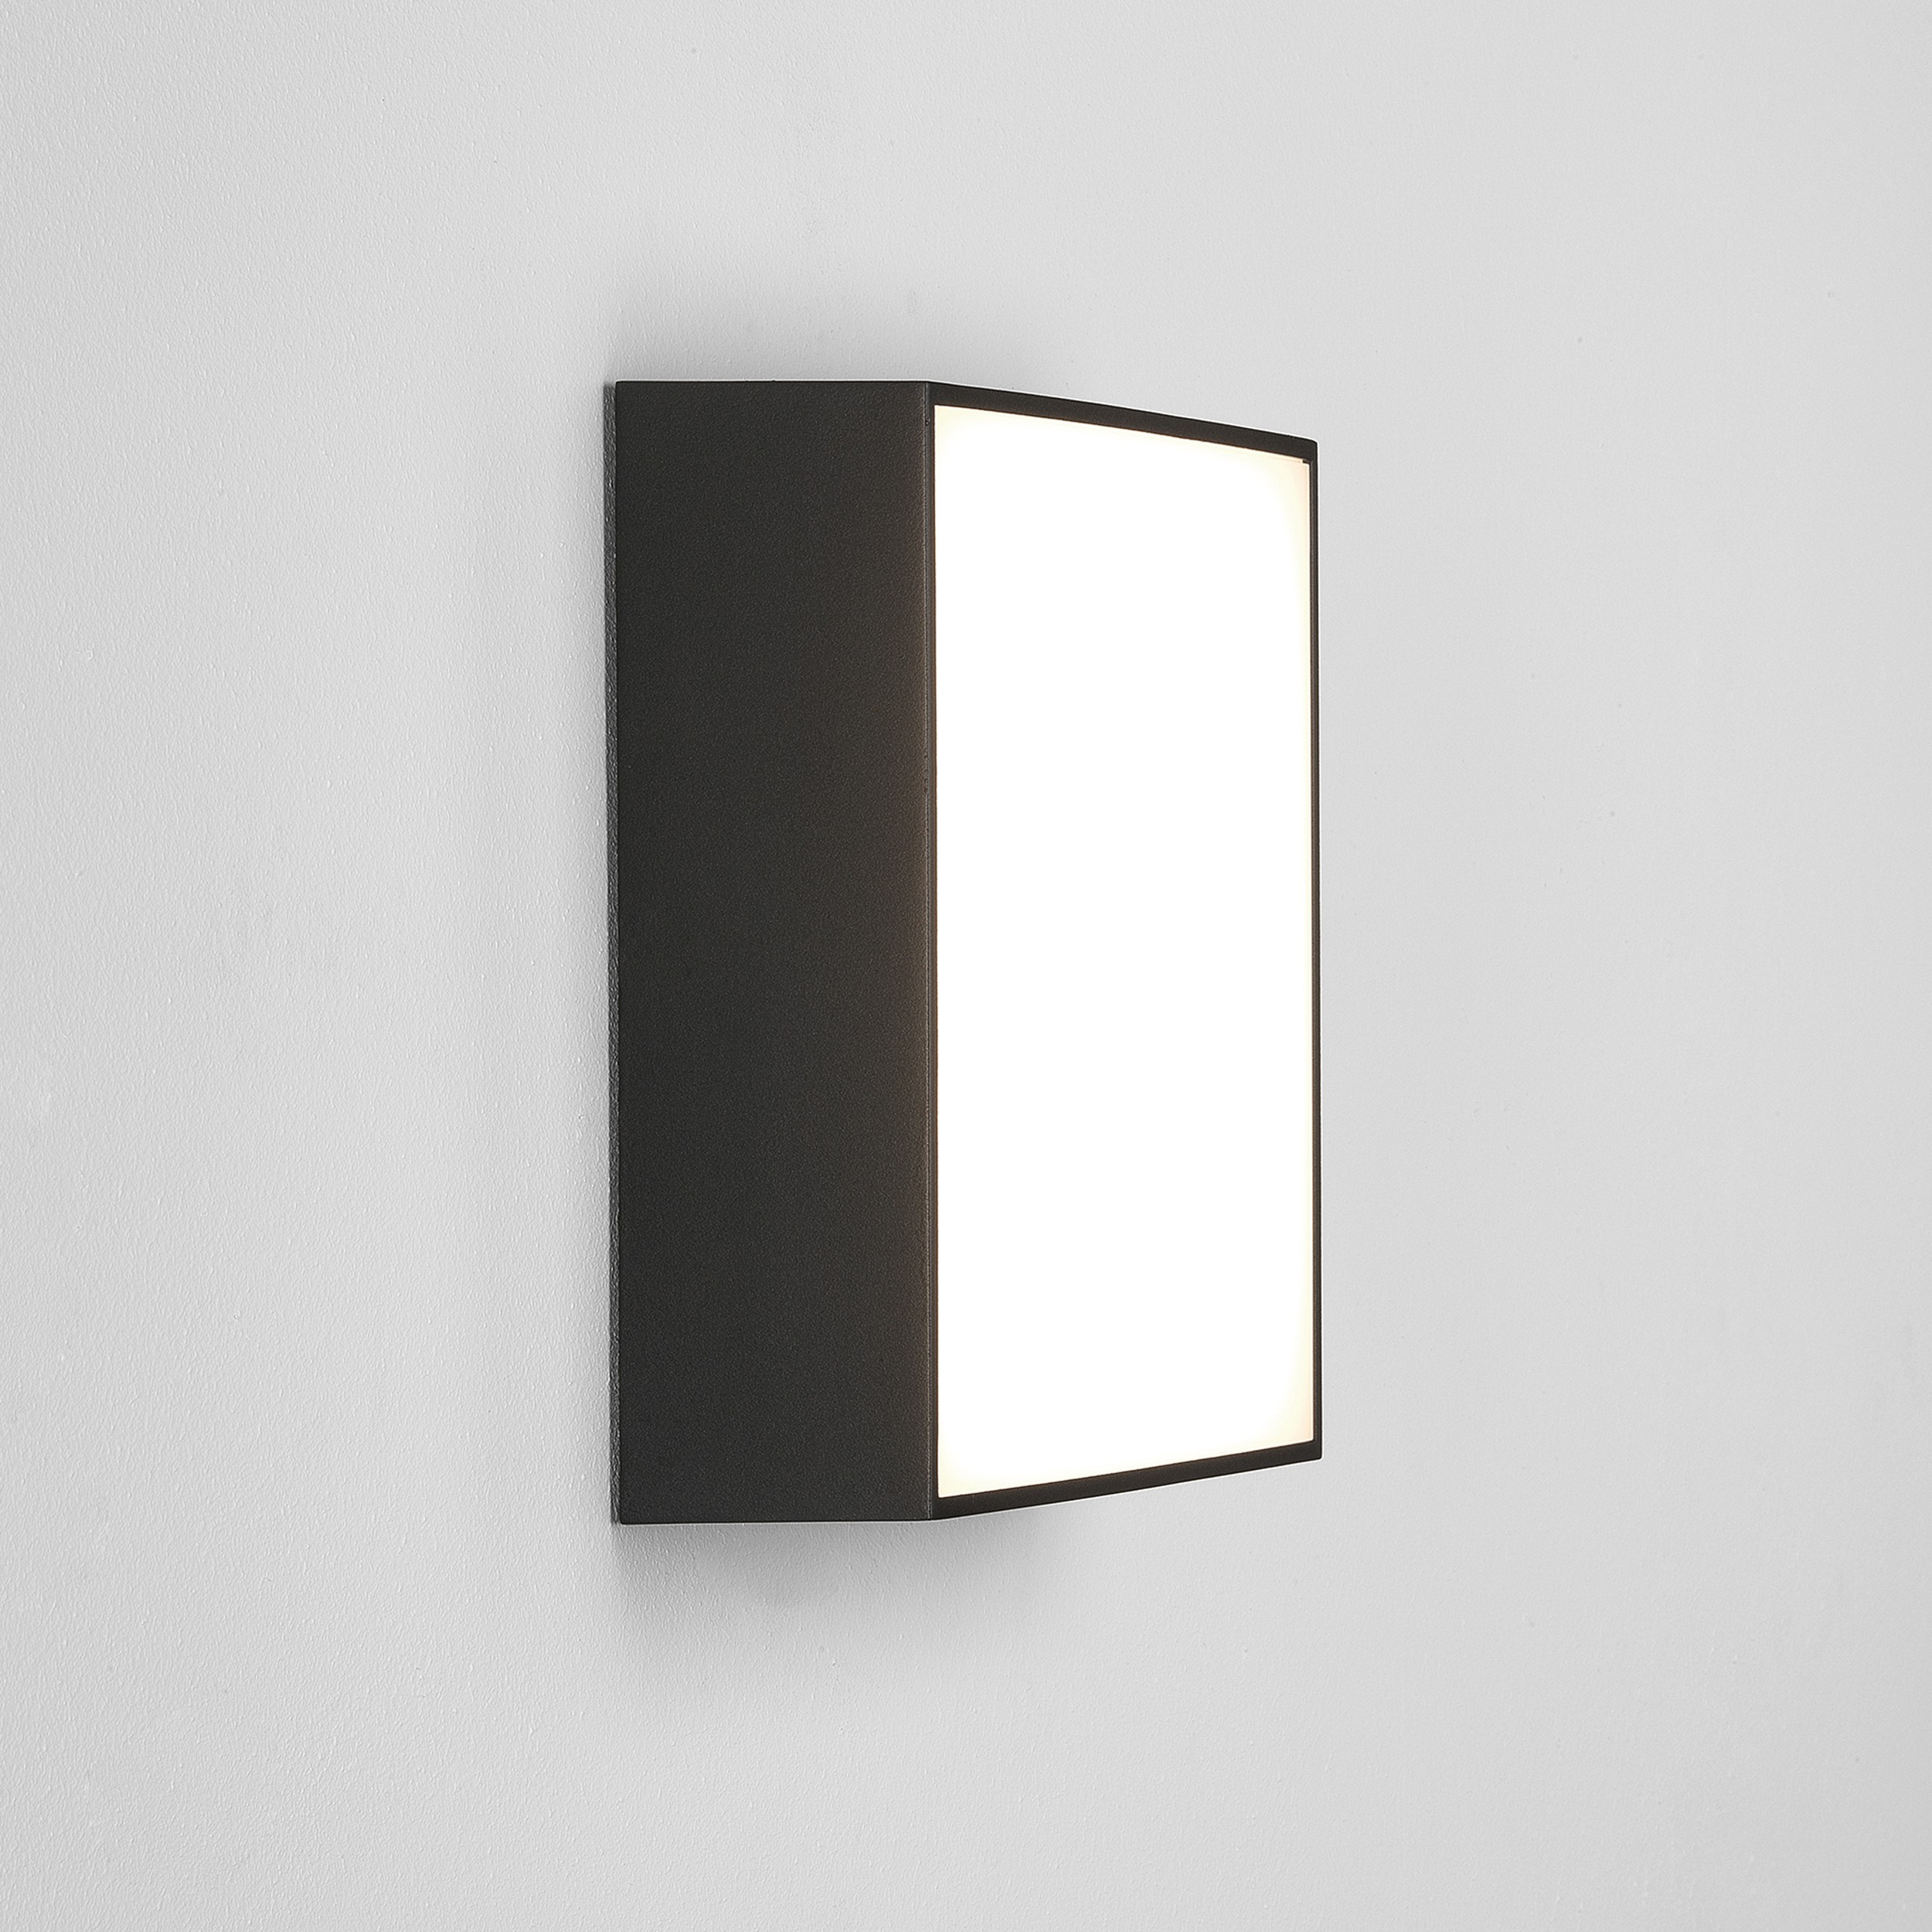 Textured black ip65 led 250mm square outdoor wall light